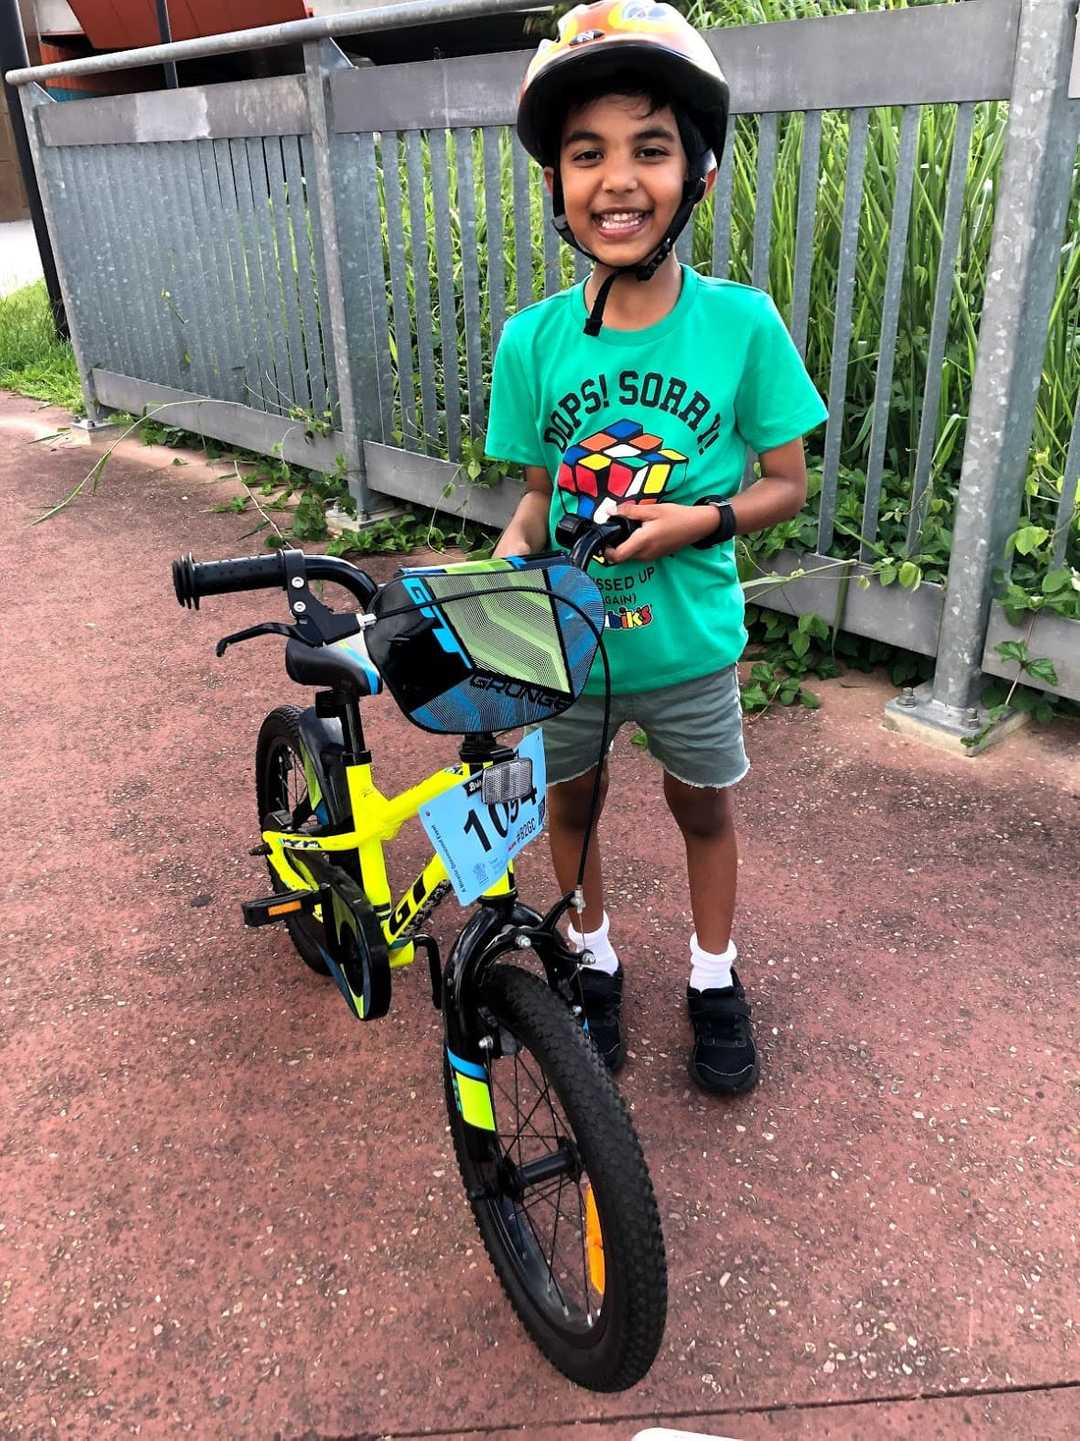 Gautham with his cycle, happy that he can ride on his own